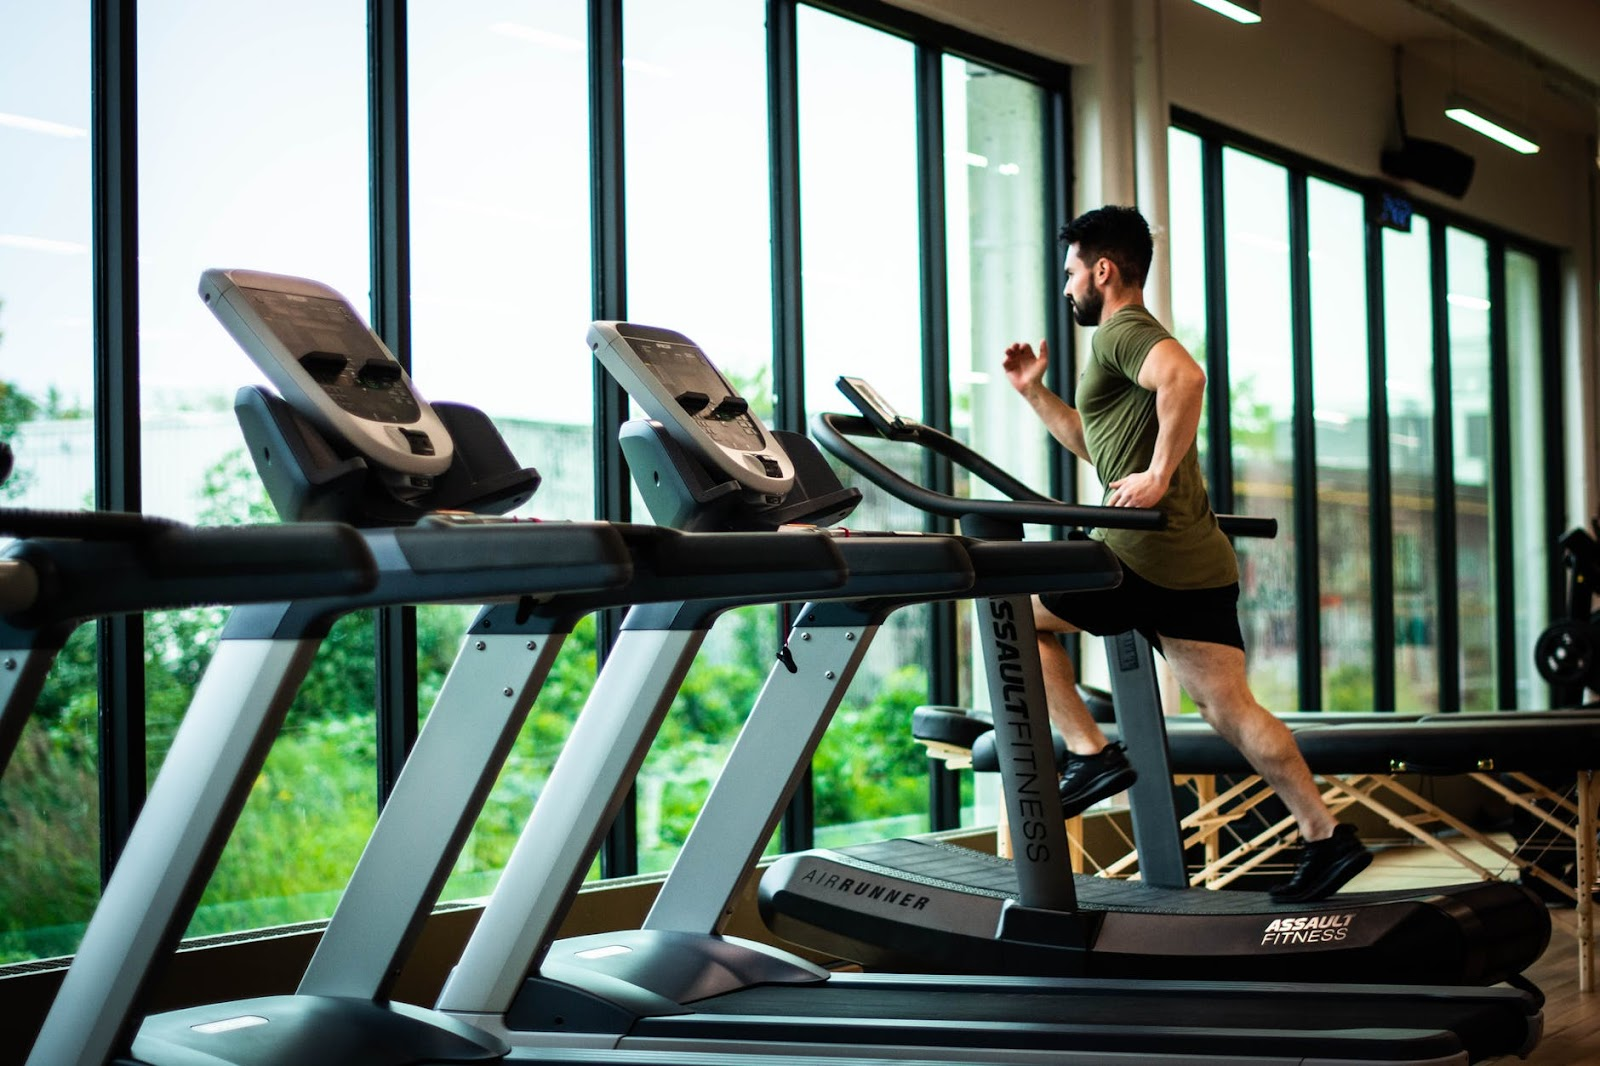 Joining A Gym: What To Expect